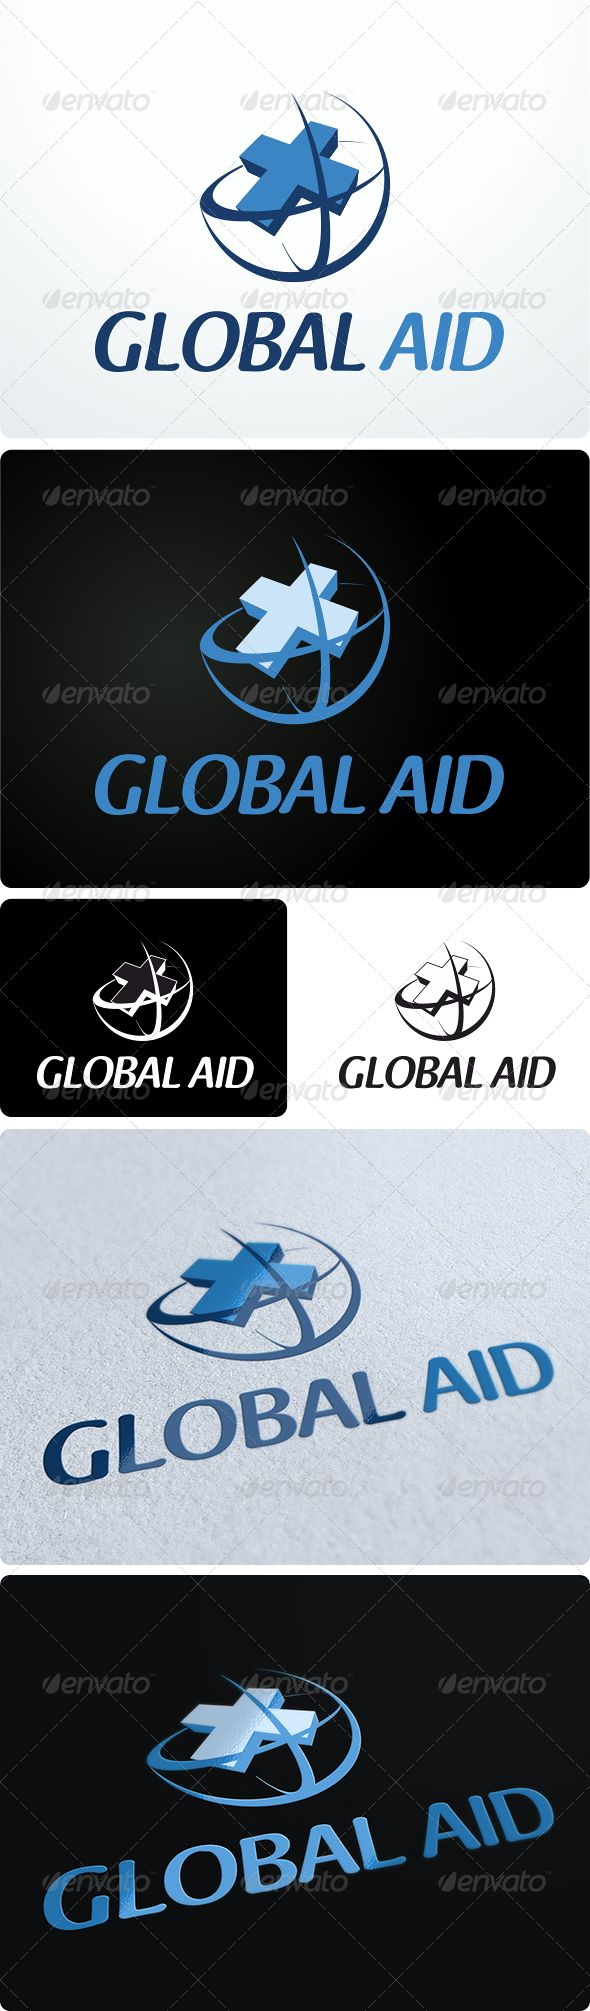 Global Aid Logo Design — Vector EPS #recovery #first • Available here → https://graphicriver.net/item/global-aid-logo-design/2833216?ref=pxcr